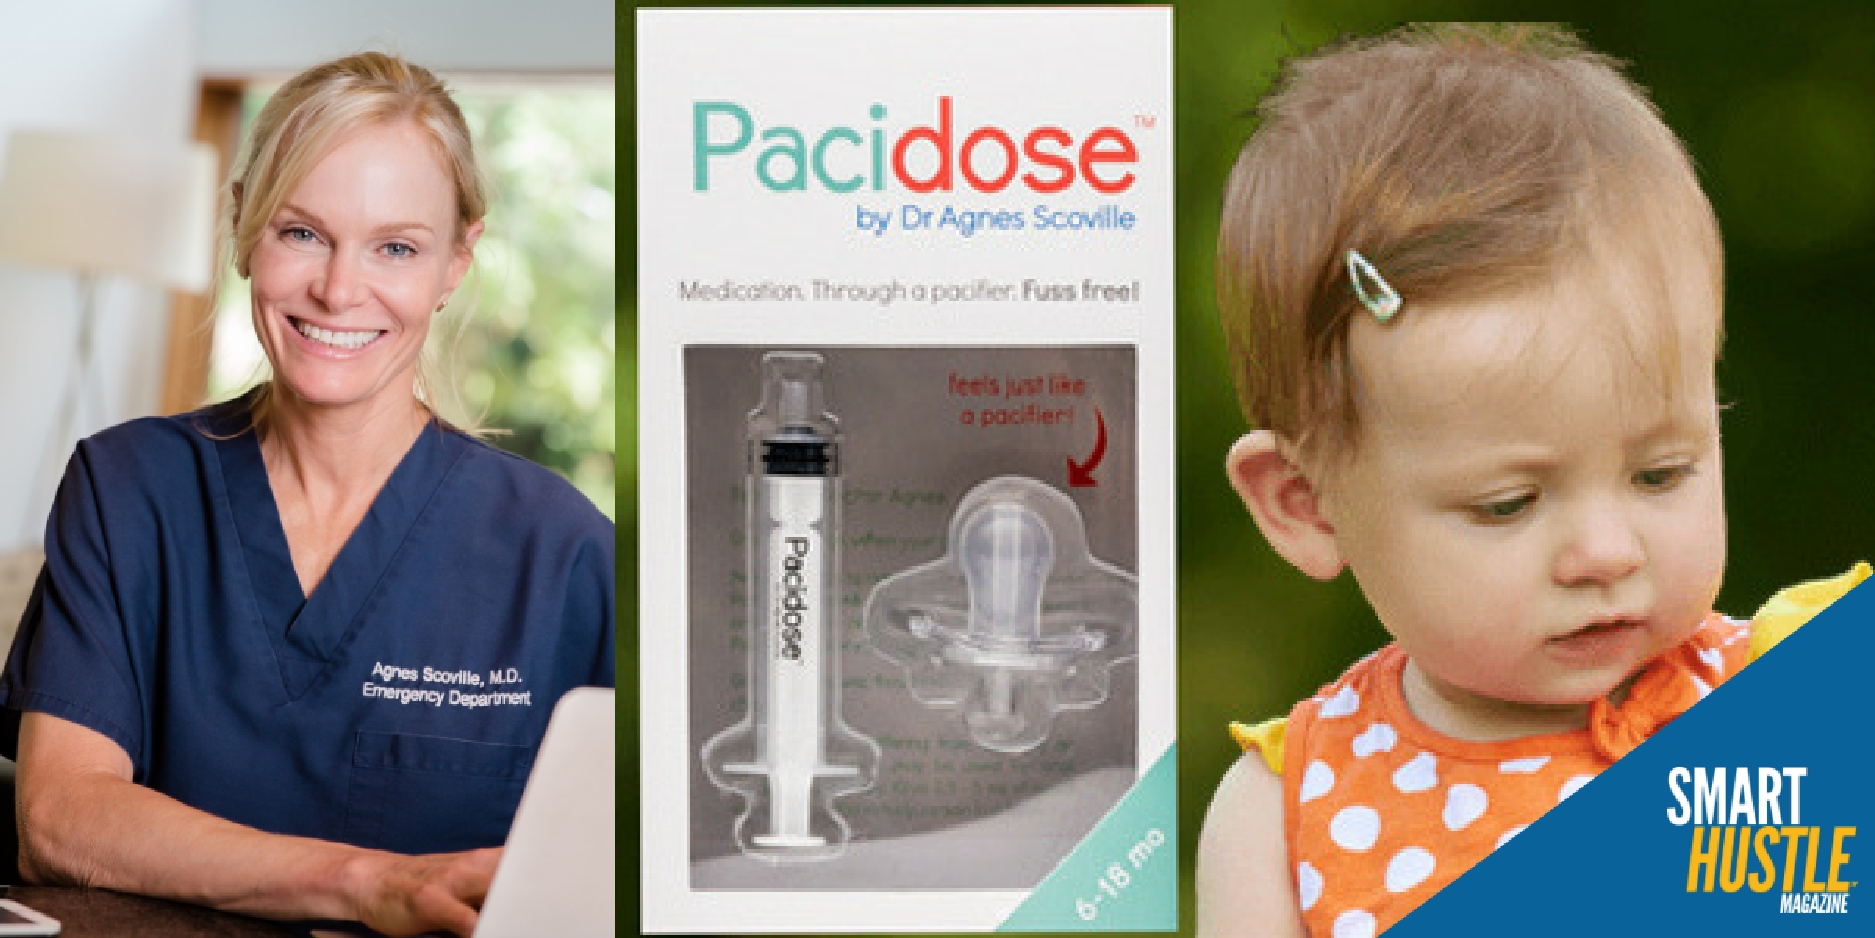 How an Entrepreneurial Doctor's Product is Helping Babies Take Medicine